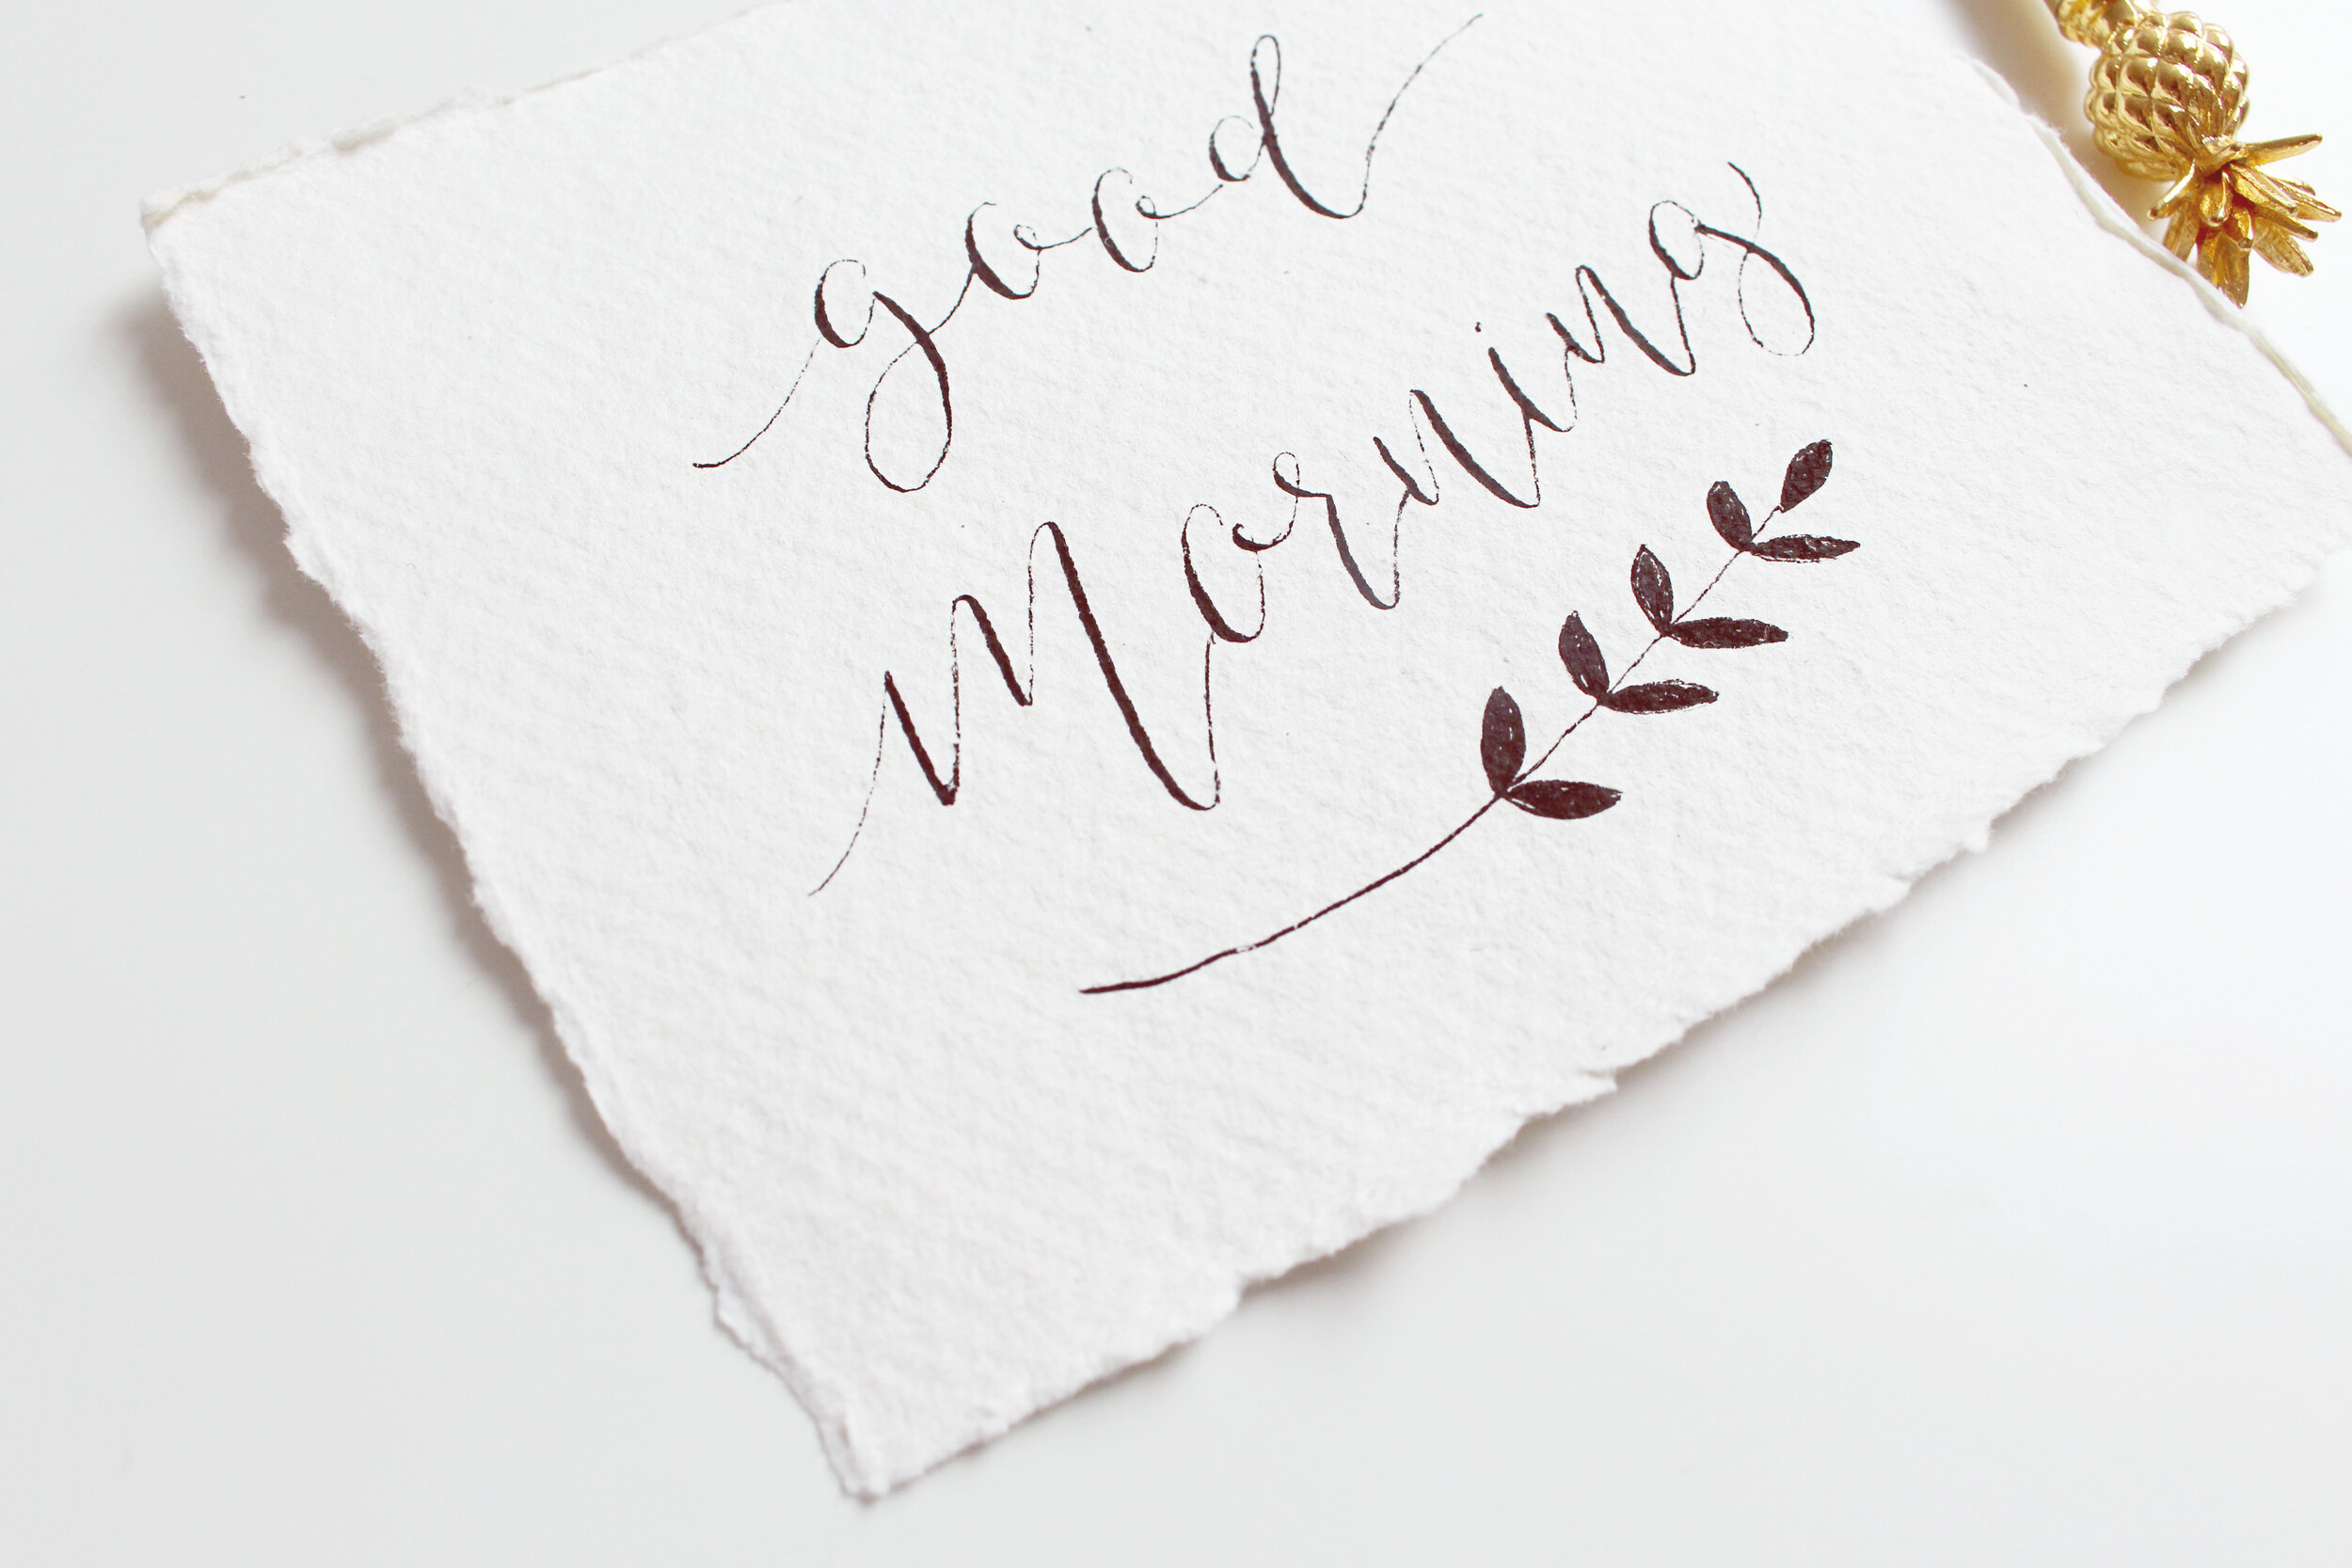 cotton paper calligraphy